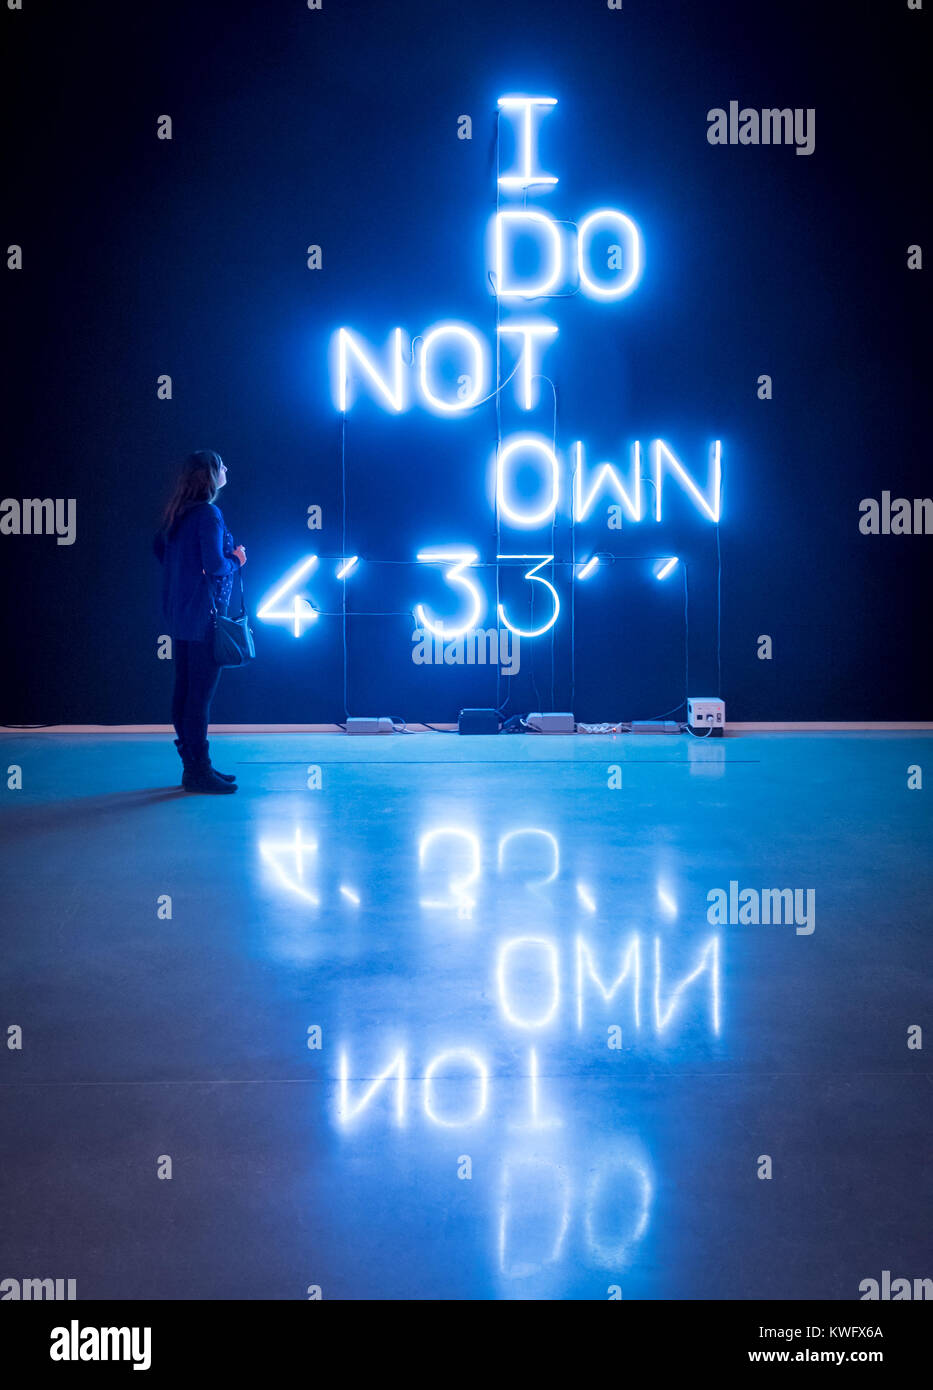 A young woman looks at the neon installation I Do Not Own 4' 33' by artist Pierre Huyghe, at the Remai Modern - Stock Image